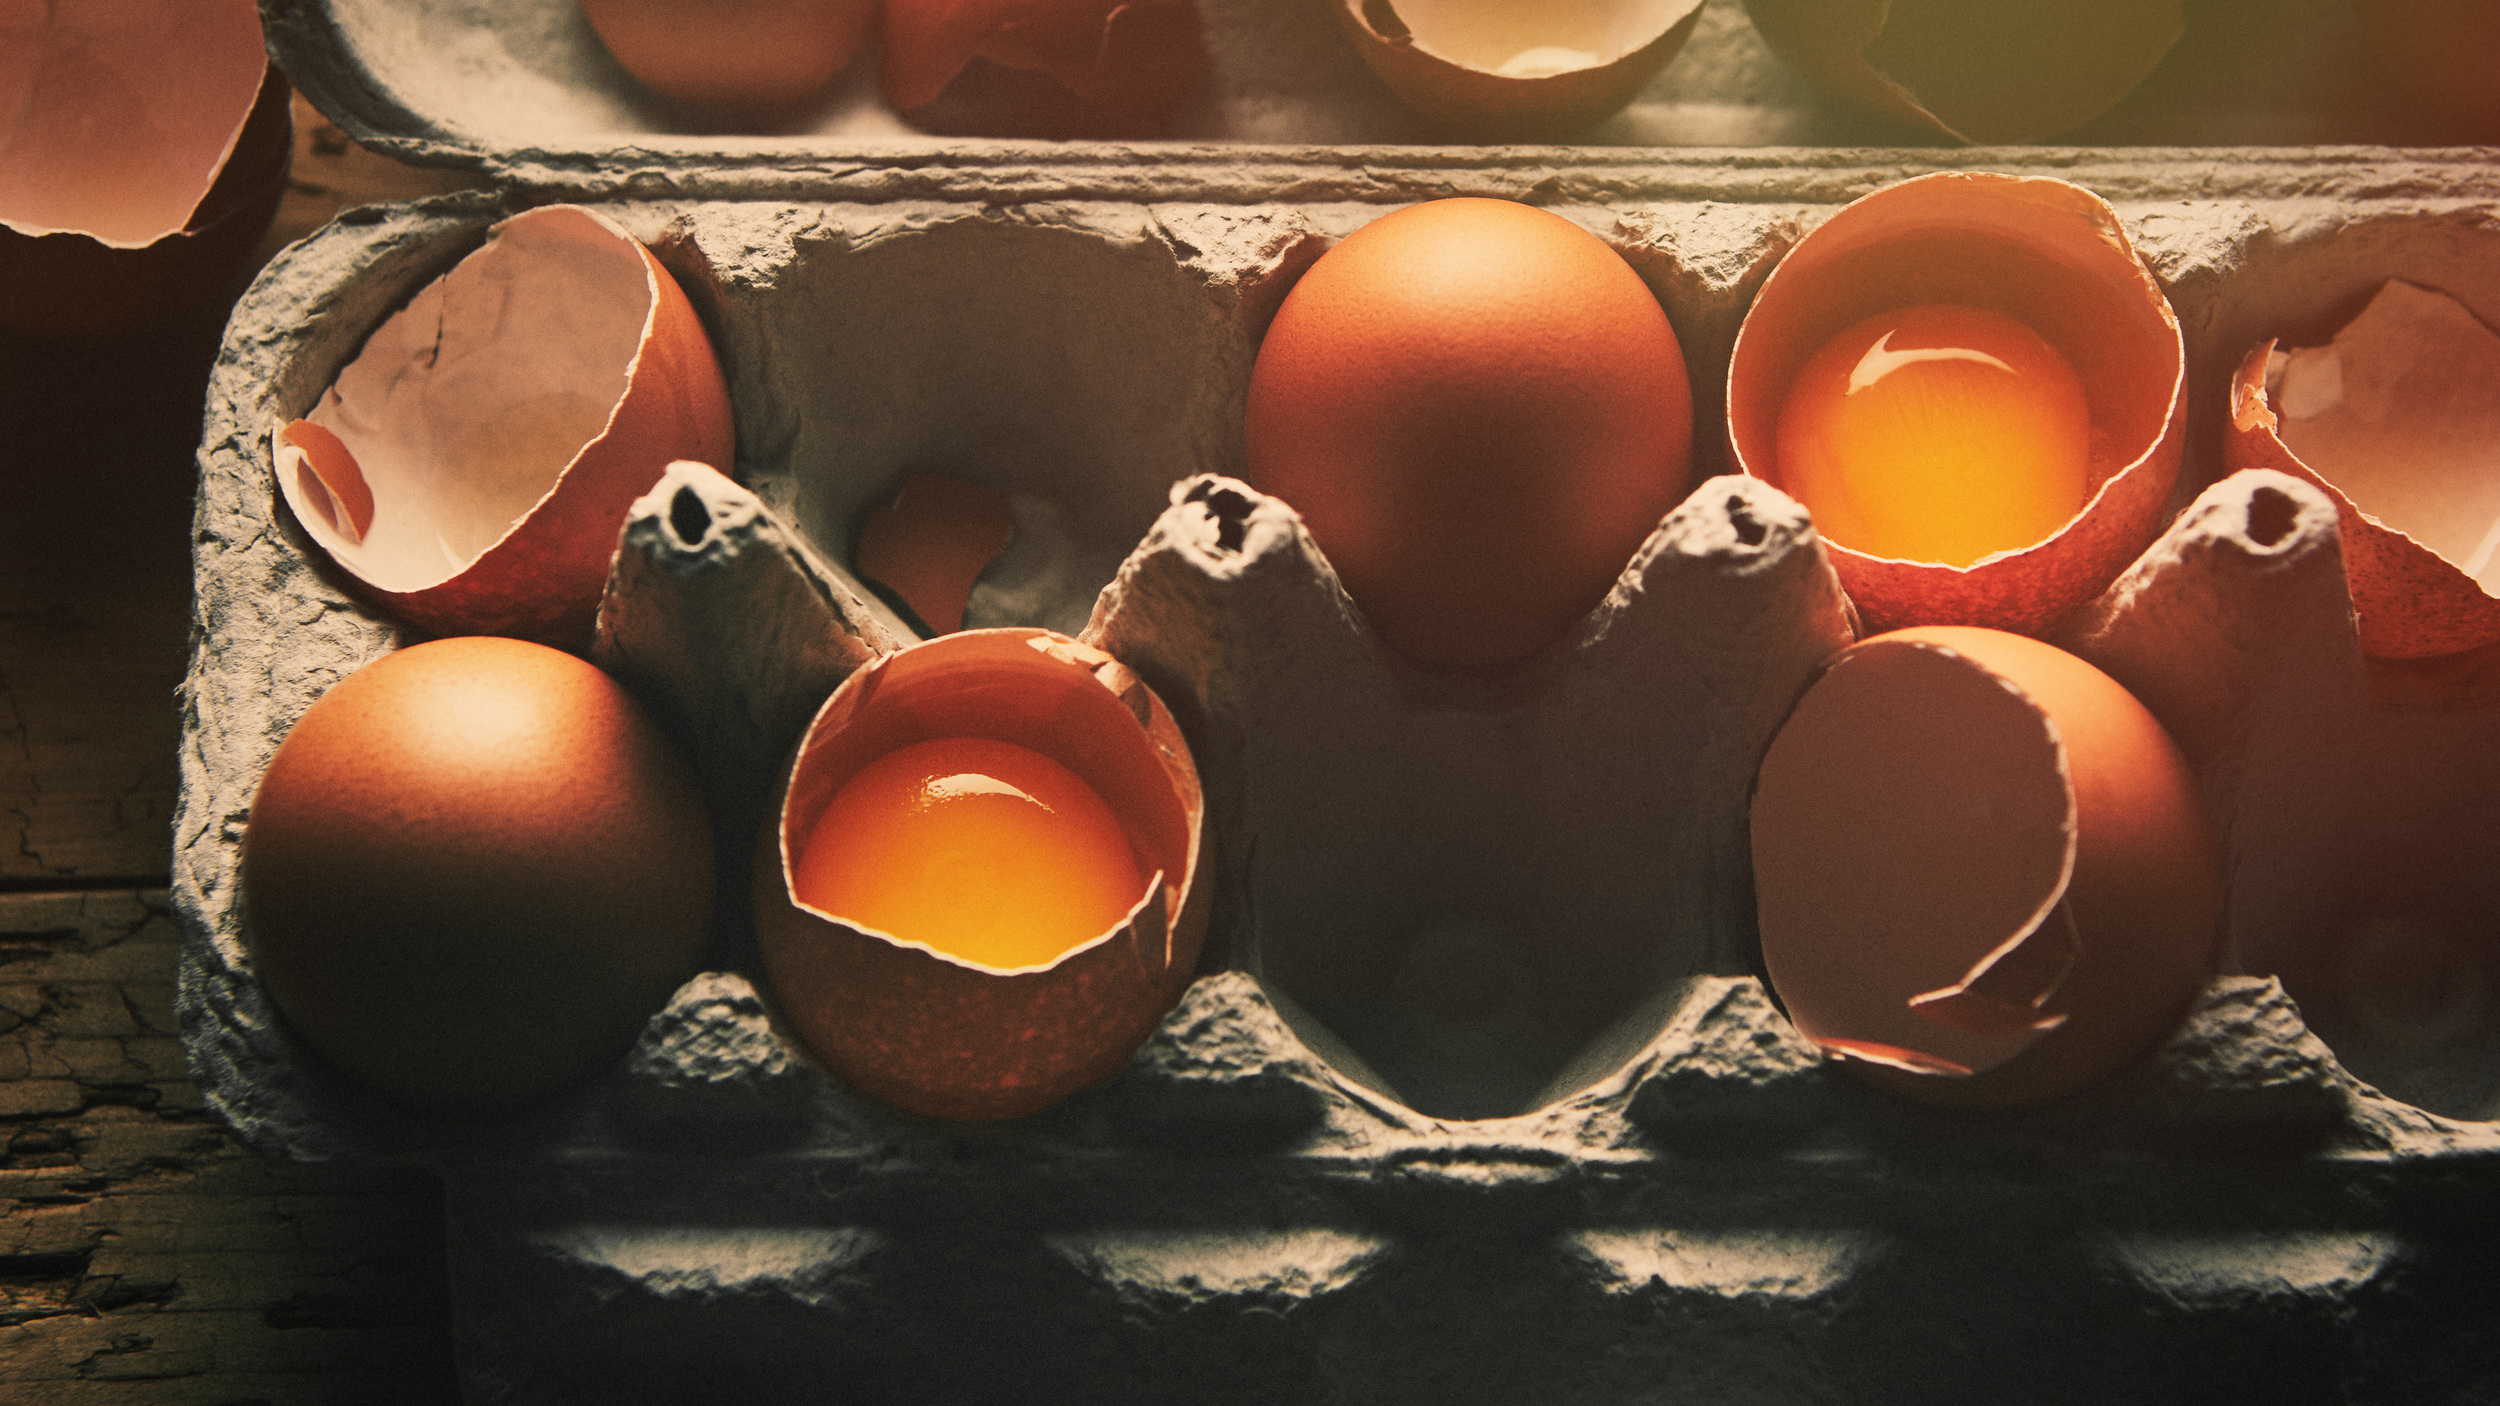 The goal here was to create rustic, farm-fresh eggs in morning light.  This was an exercise in lighting and I think we pulled it off nicely.   I love the early morning feel of this shot.